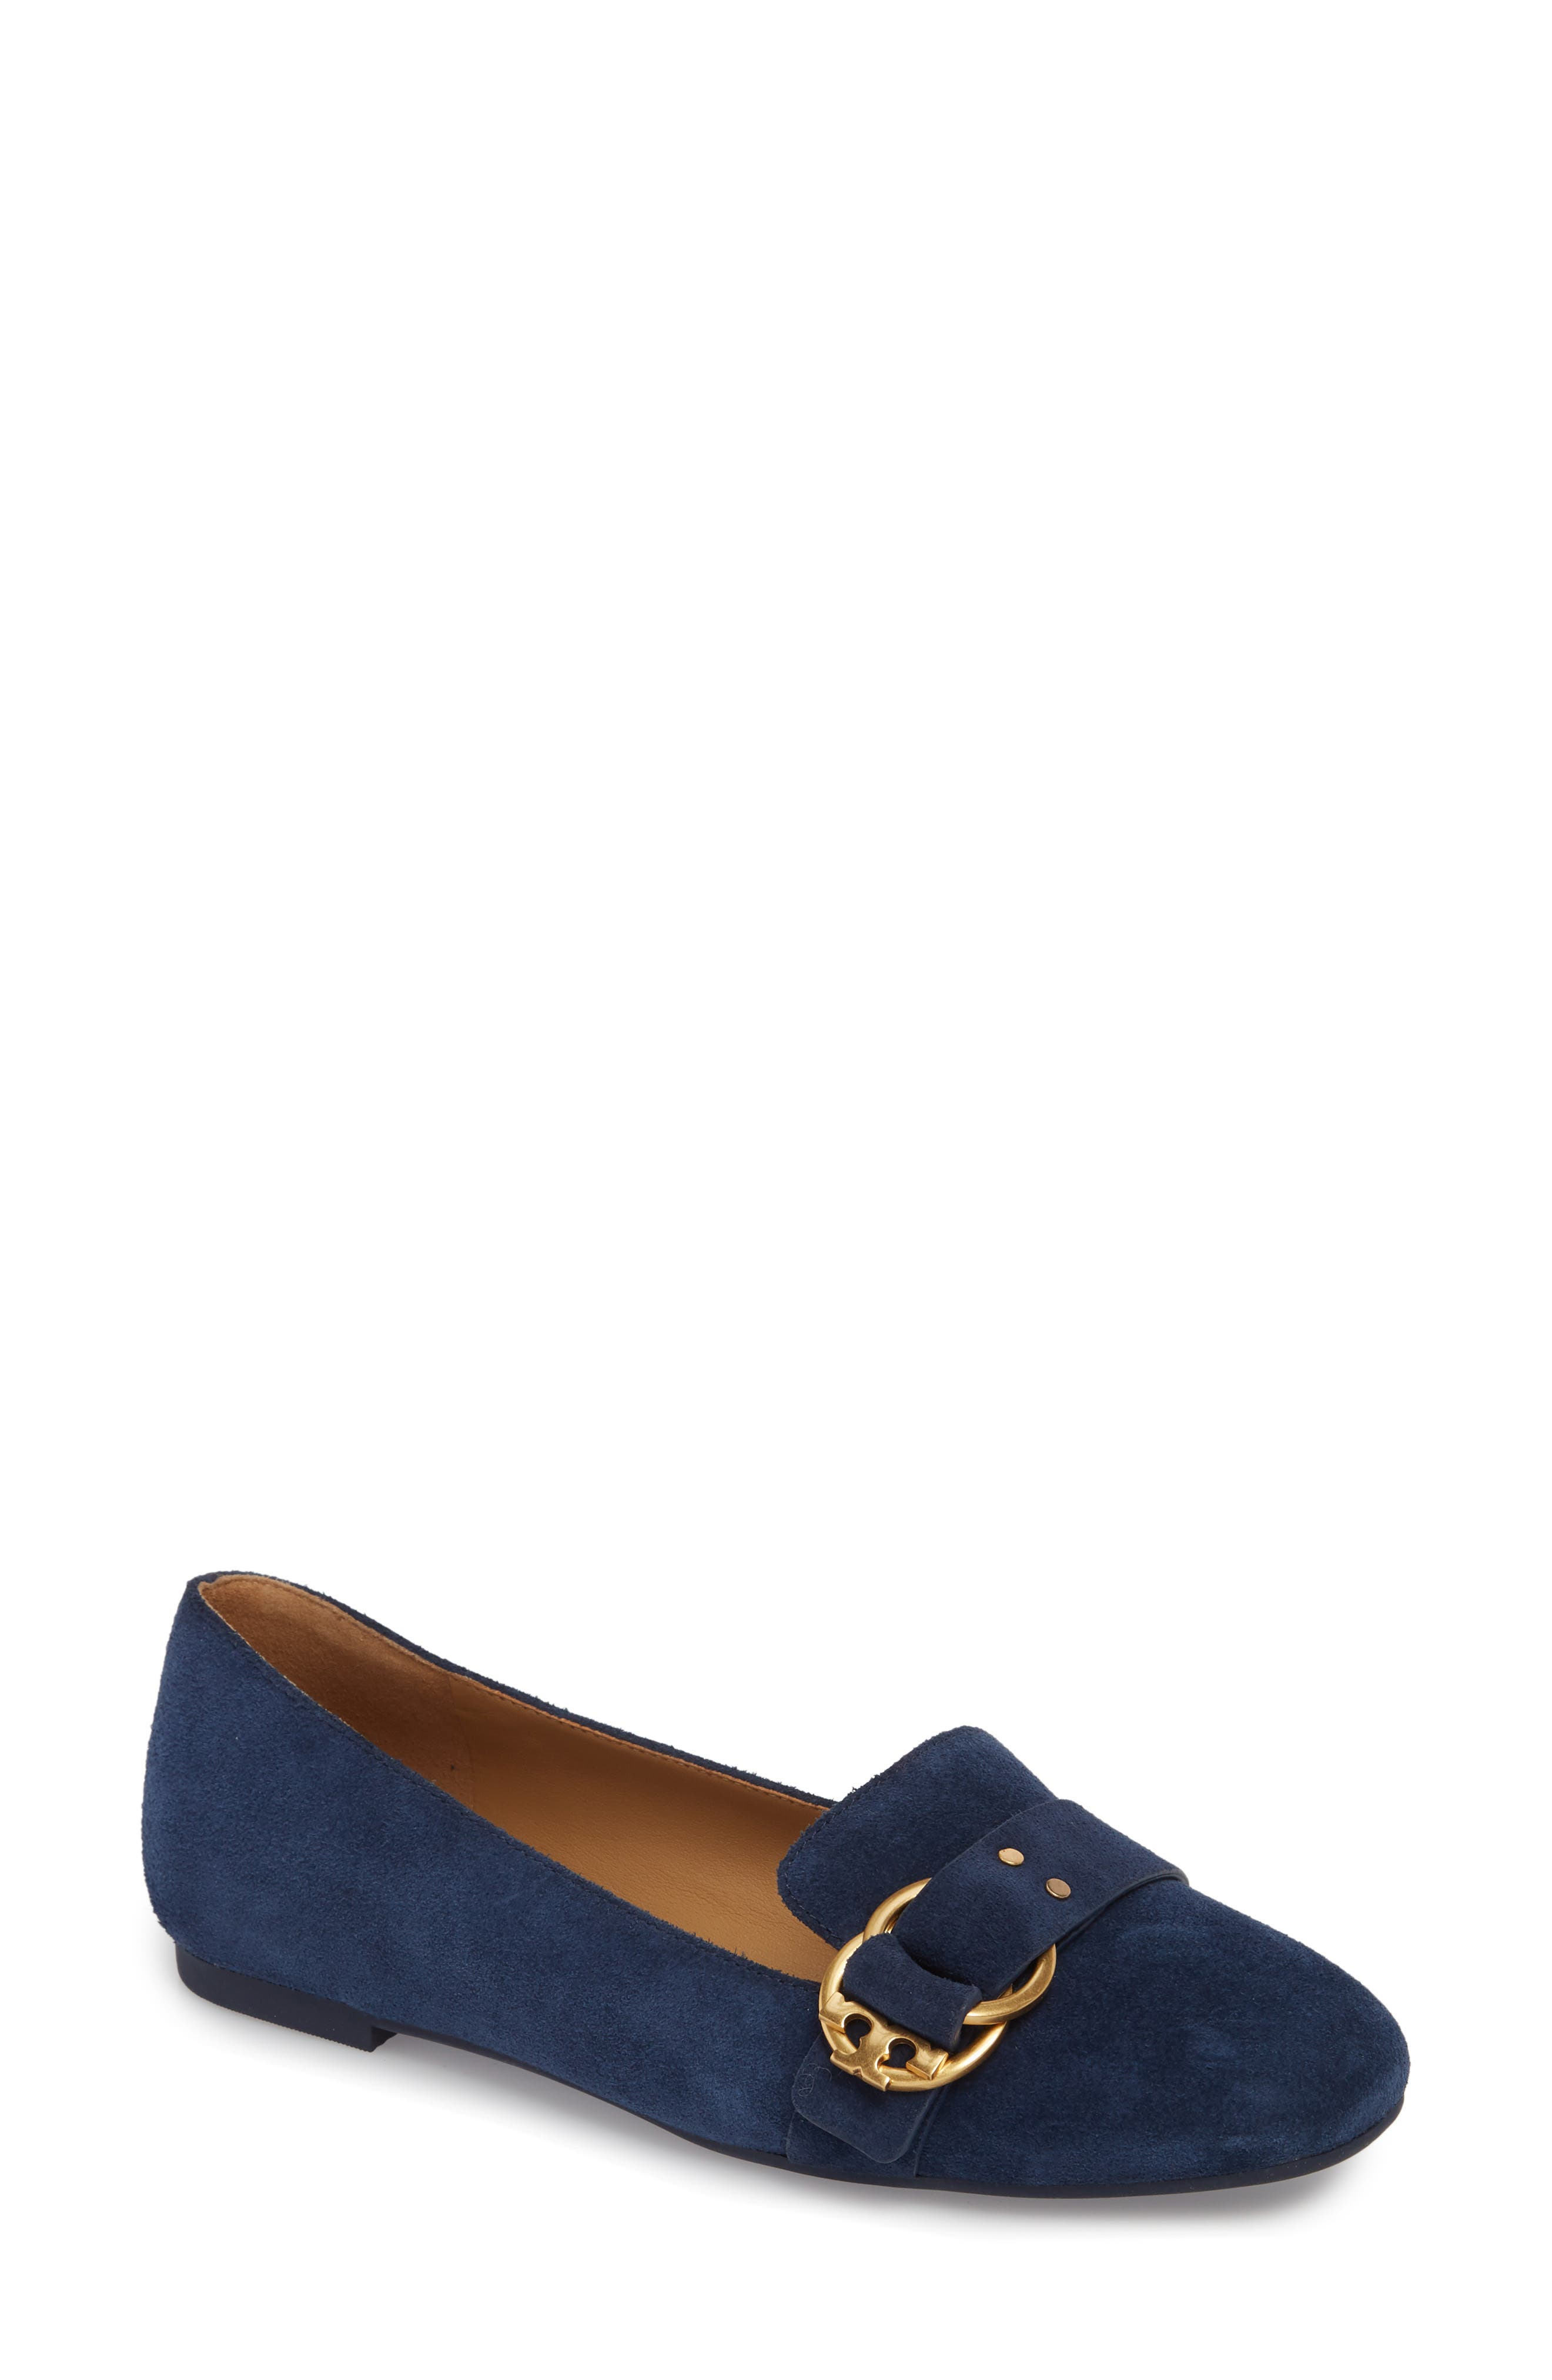 Marsden Loafer,                         Main,                         color, PERFECT NAVY